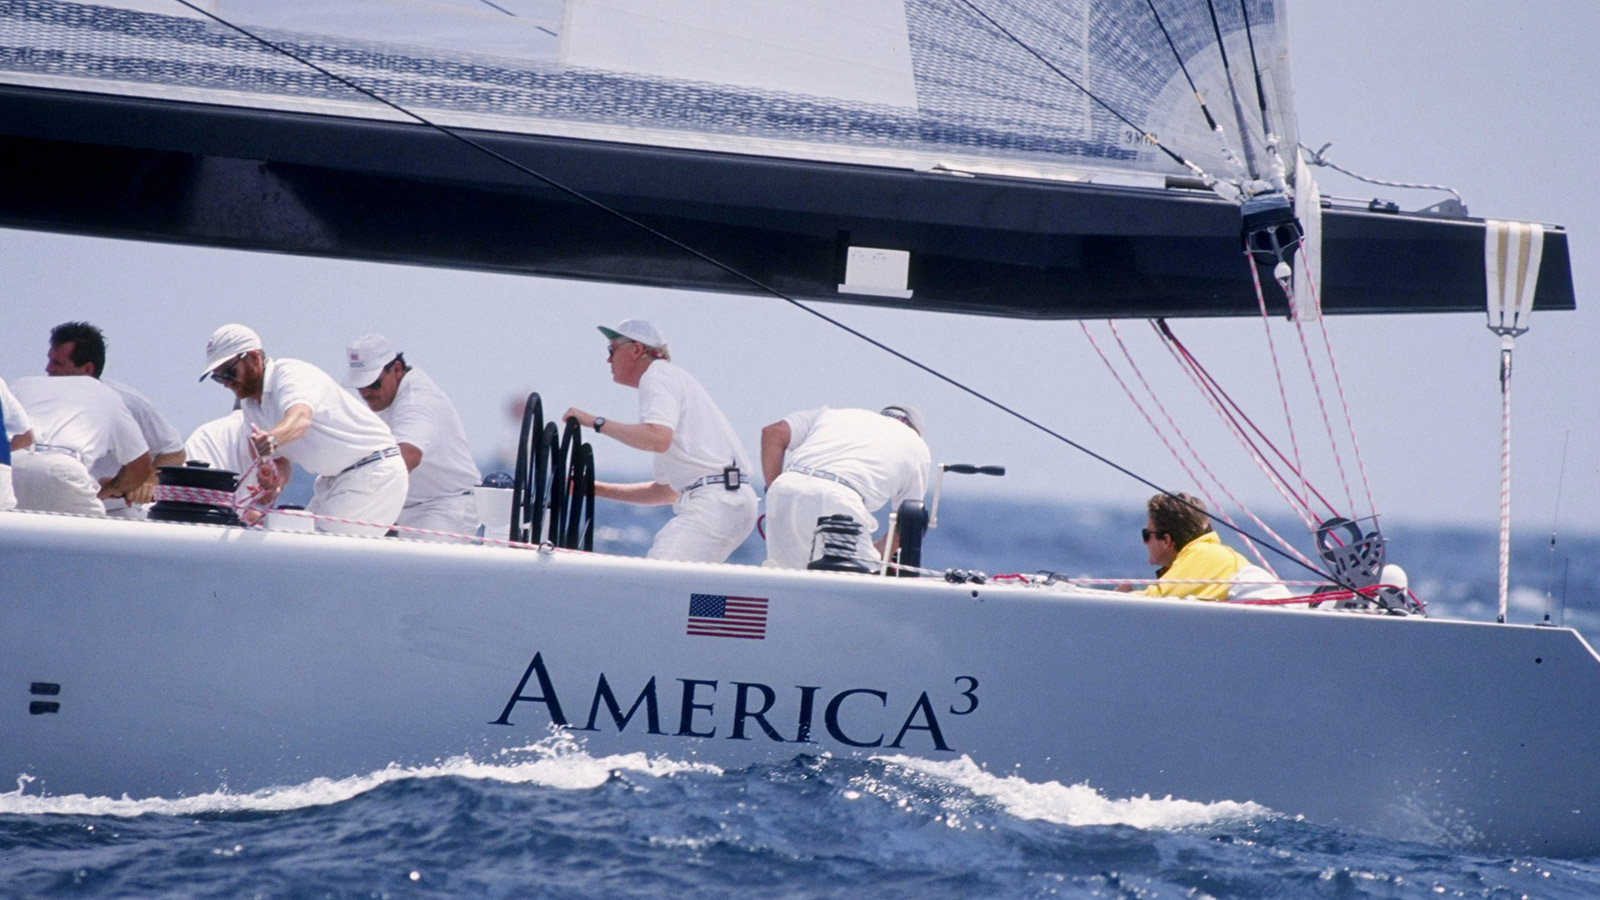 the-americas-cup-winner-america-3-sailing-credit-getty-images